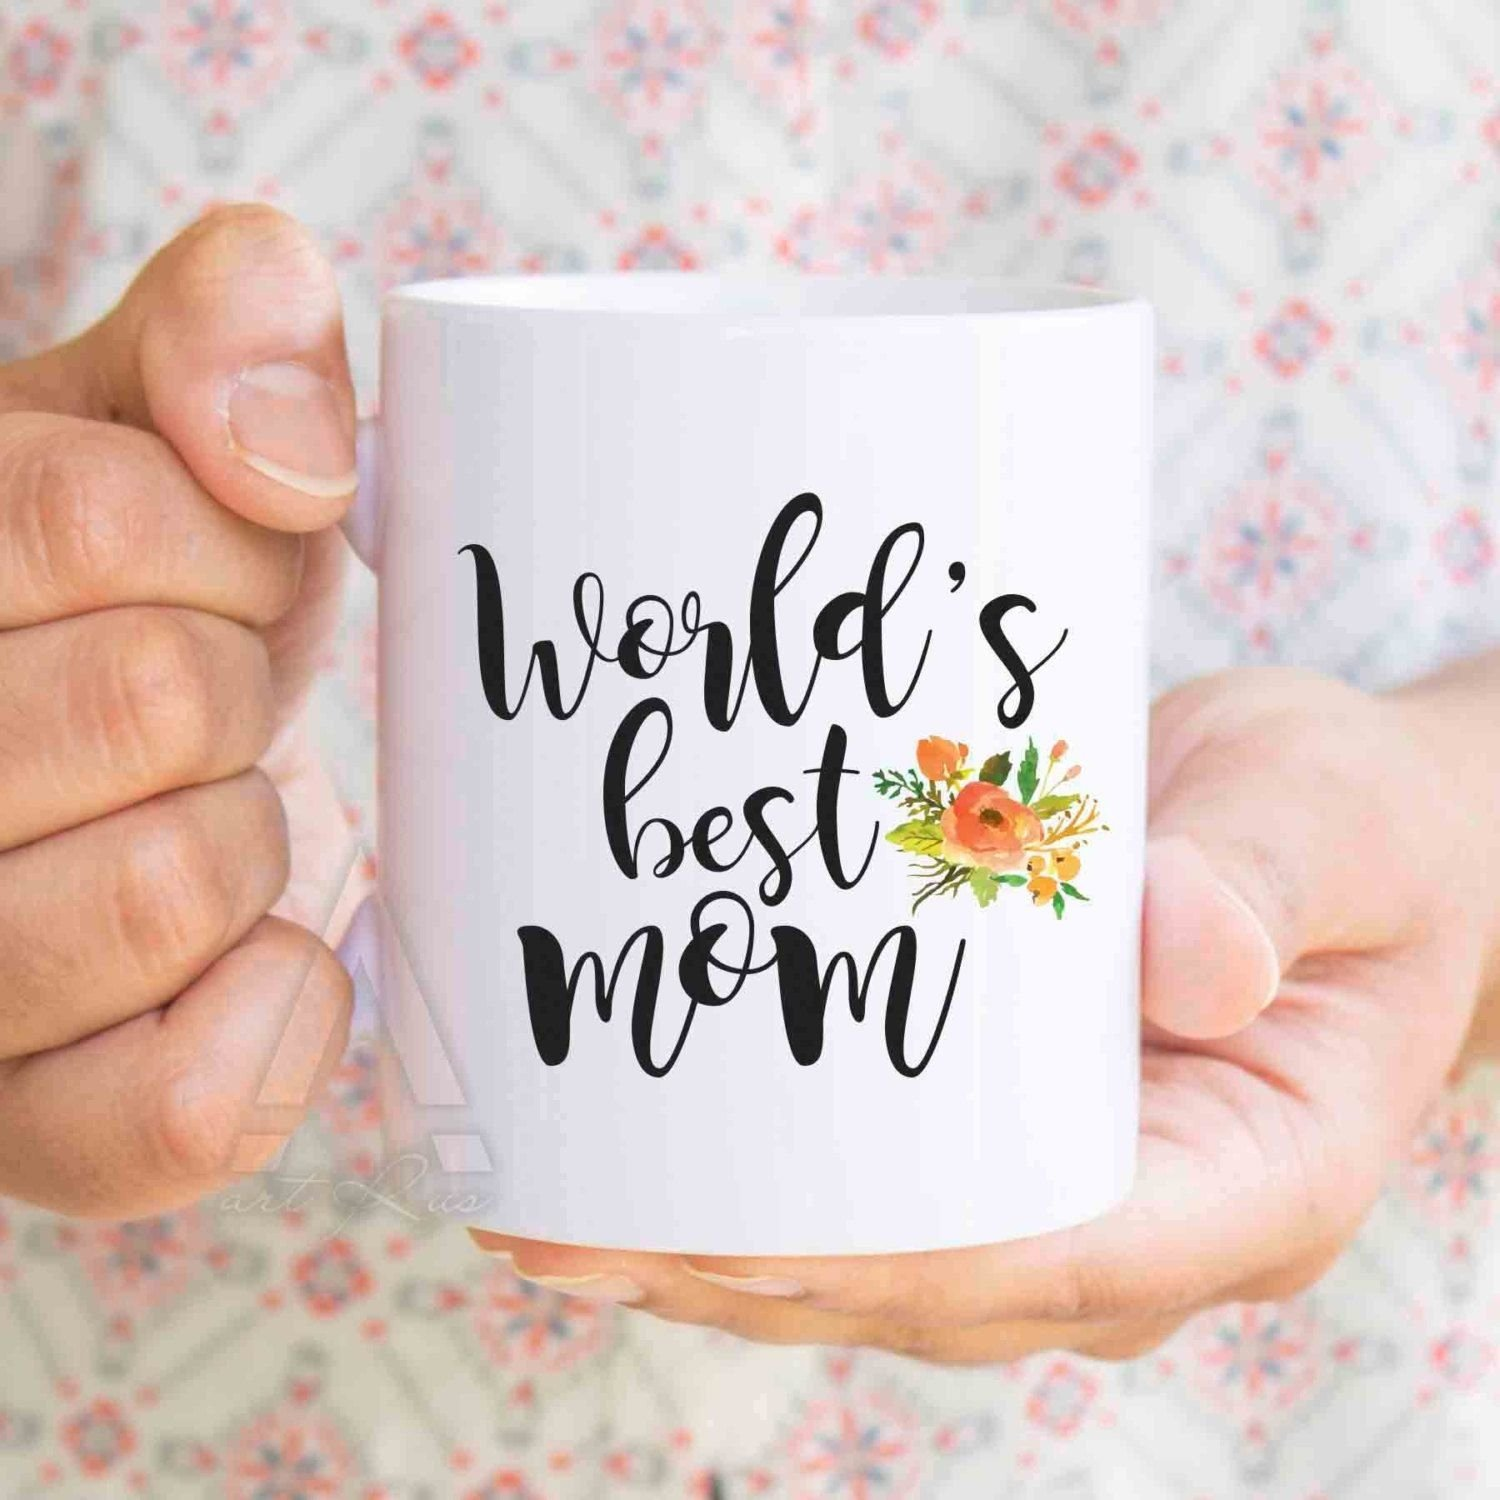 10 Gorgeous Christmas Gift Ideas For Mom From Daughter christmas gifts for mom worlds best mom coffee mug mom birthday 1 2020